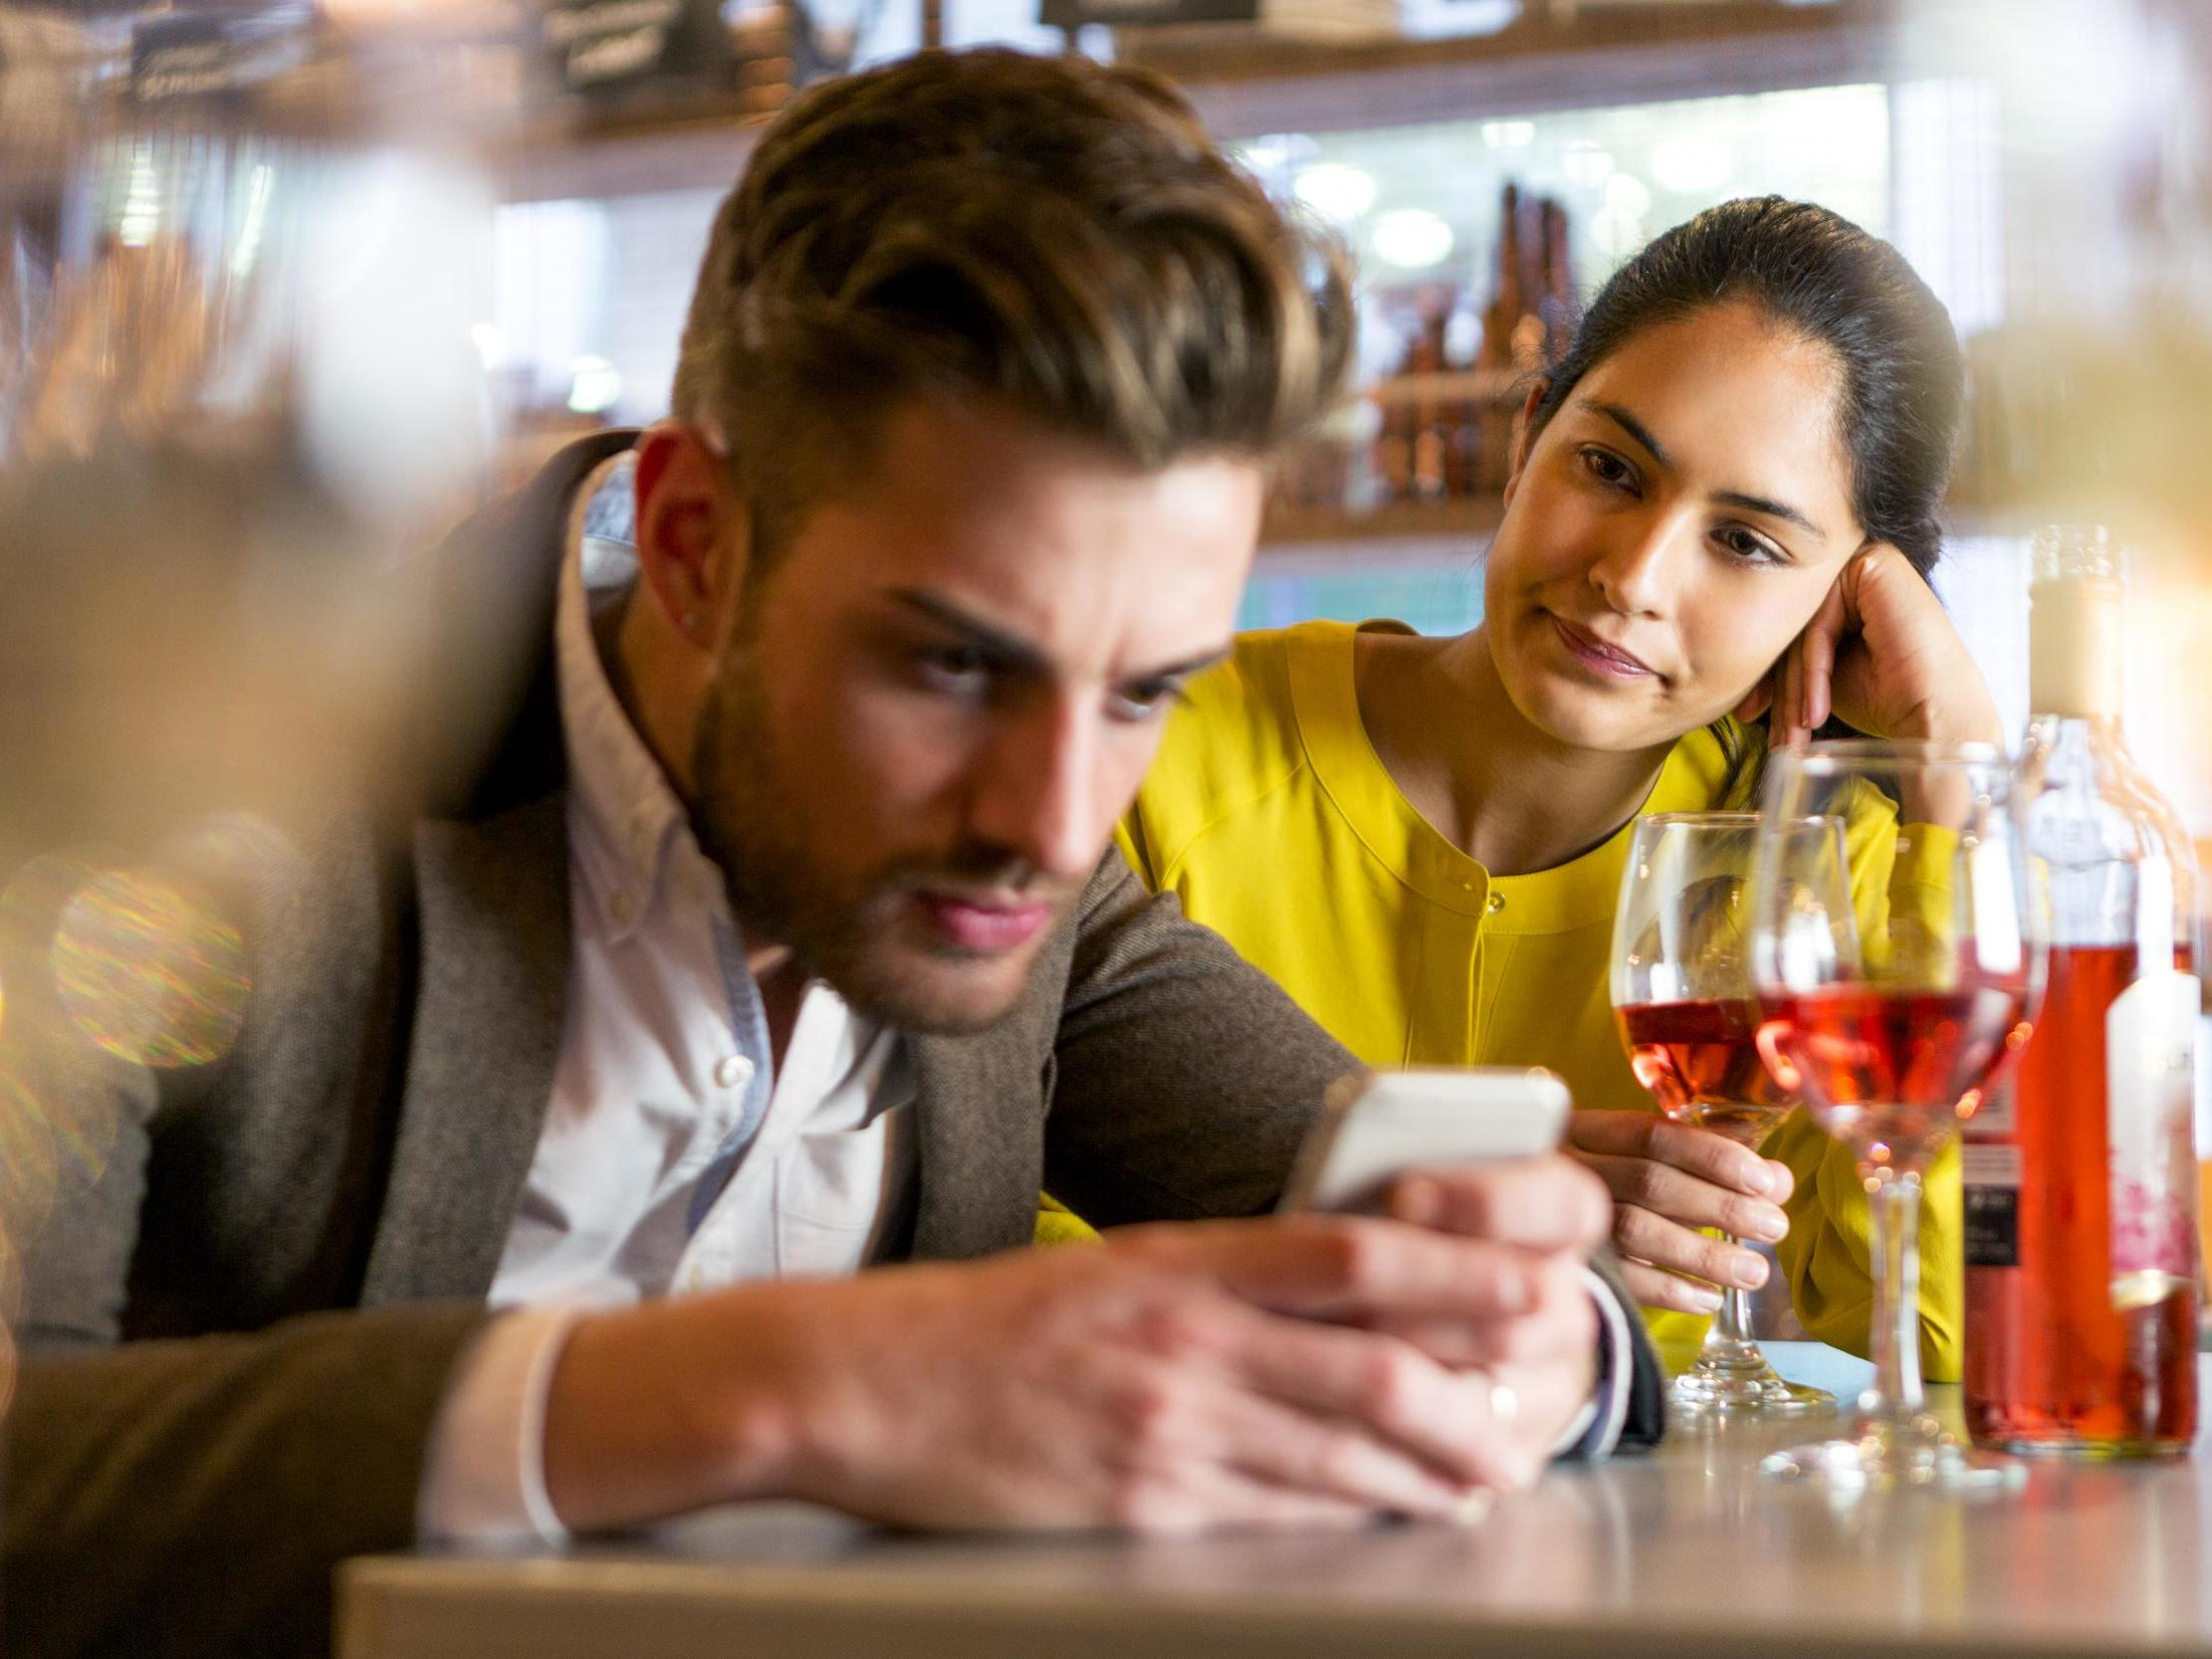 Seven in 10 adults think their partner ignores them on purpose, poll claims